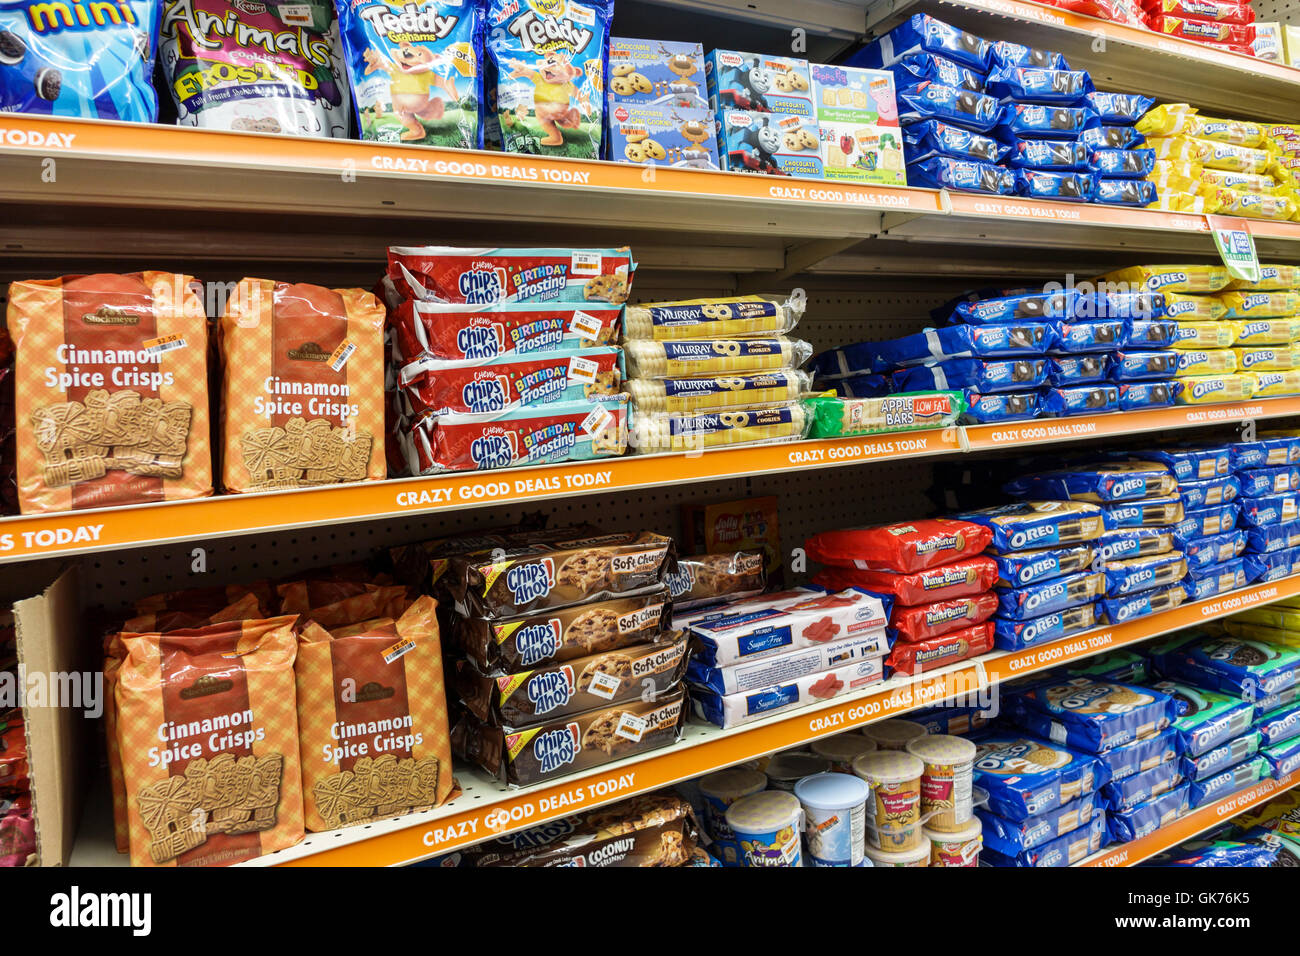 miami florida coral way big lots shopping retail company discount close out store food display shelf shelves package cookies chips ahoy oreo cinnamon - Big Lots Bookshelves